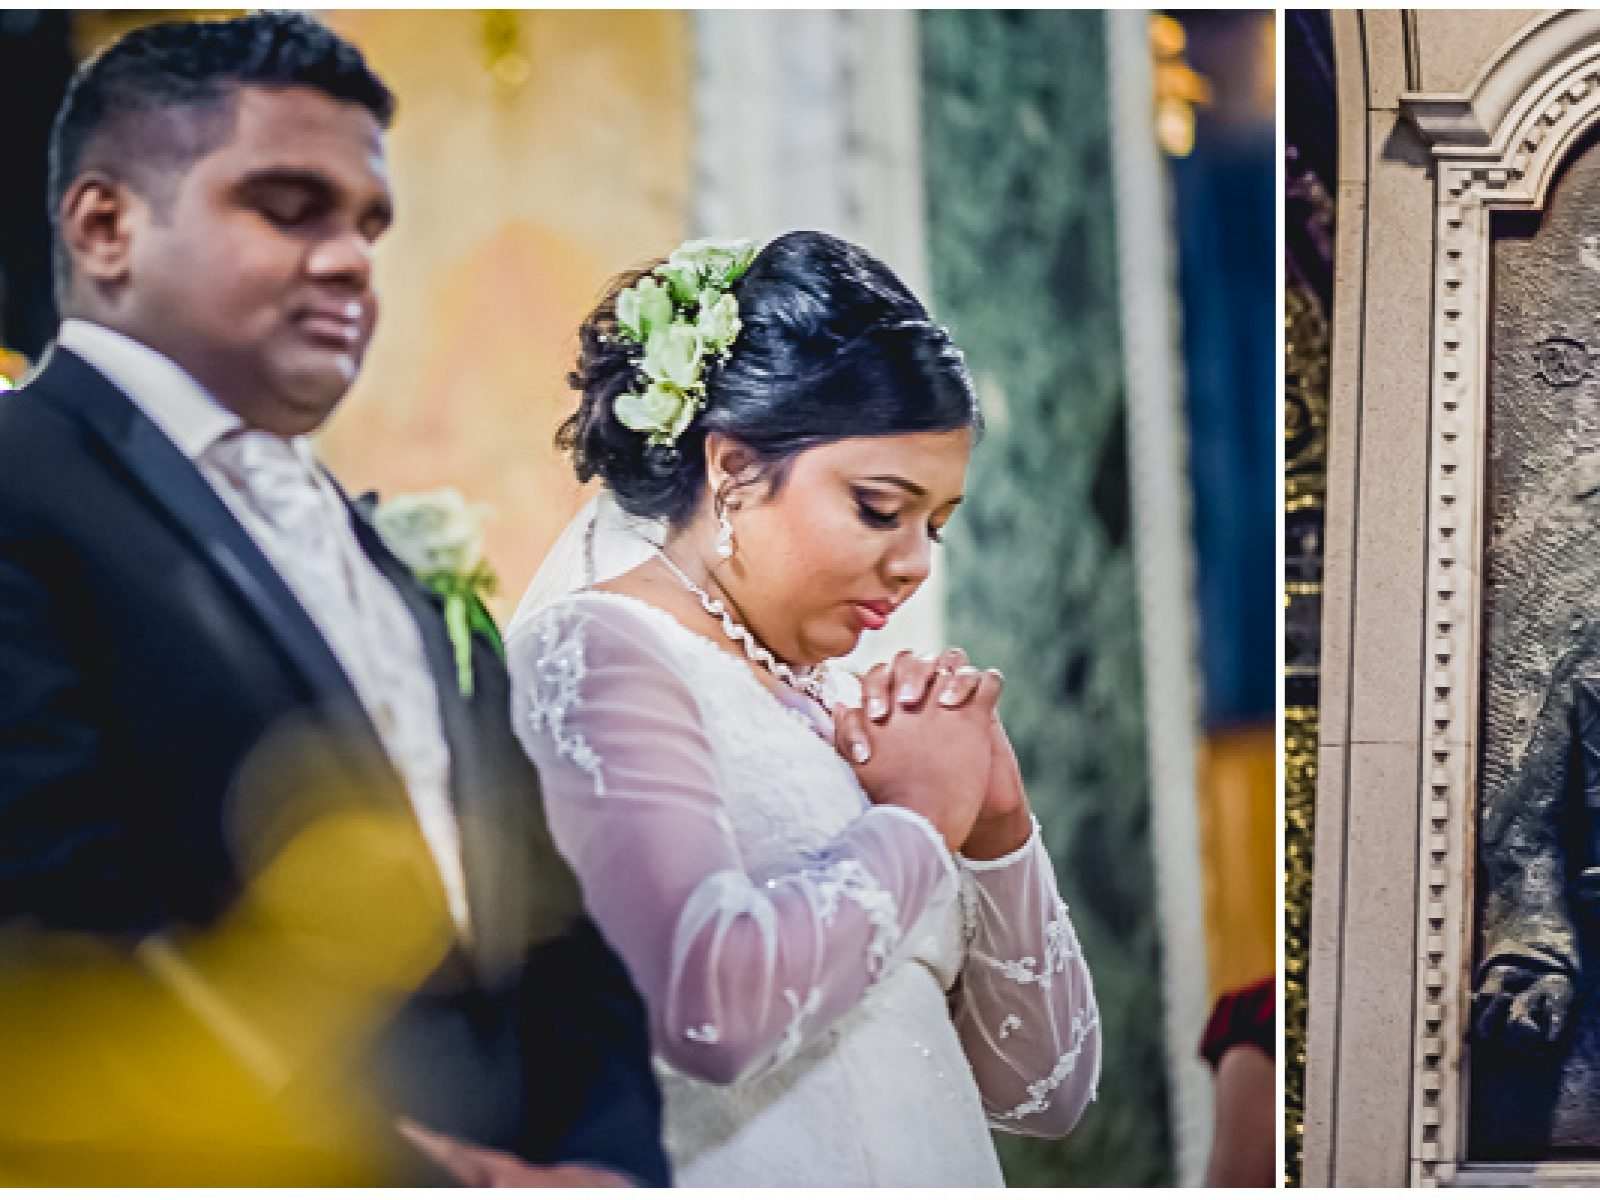 591 1600x1200 - Darshani and Anthony - wedding photographer in London